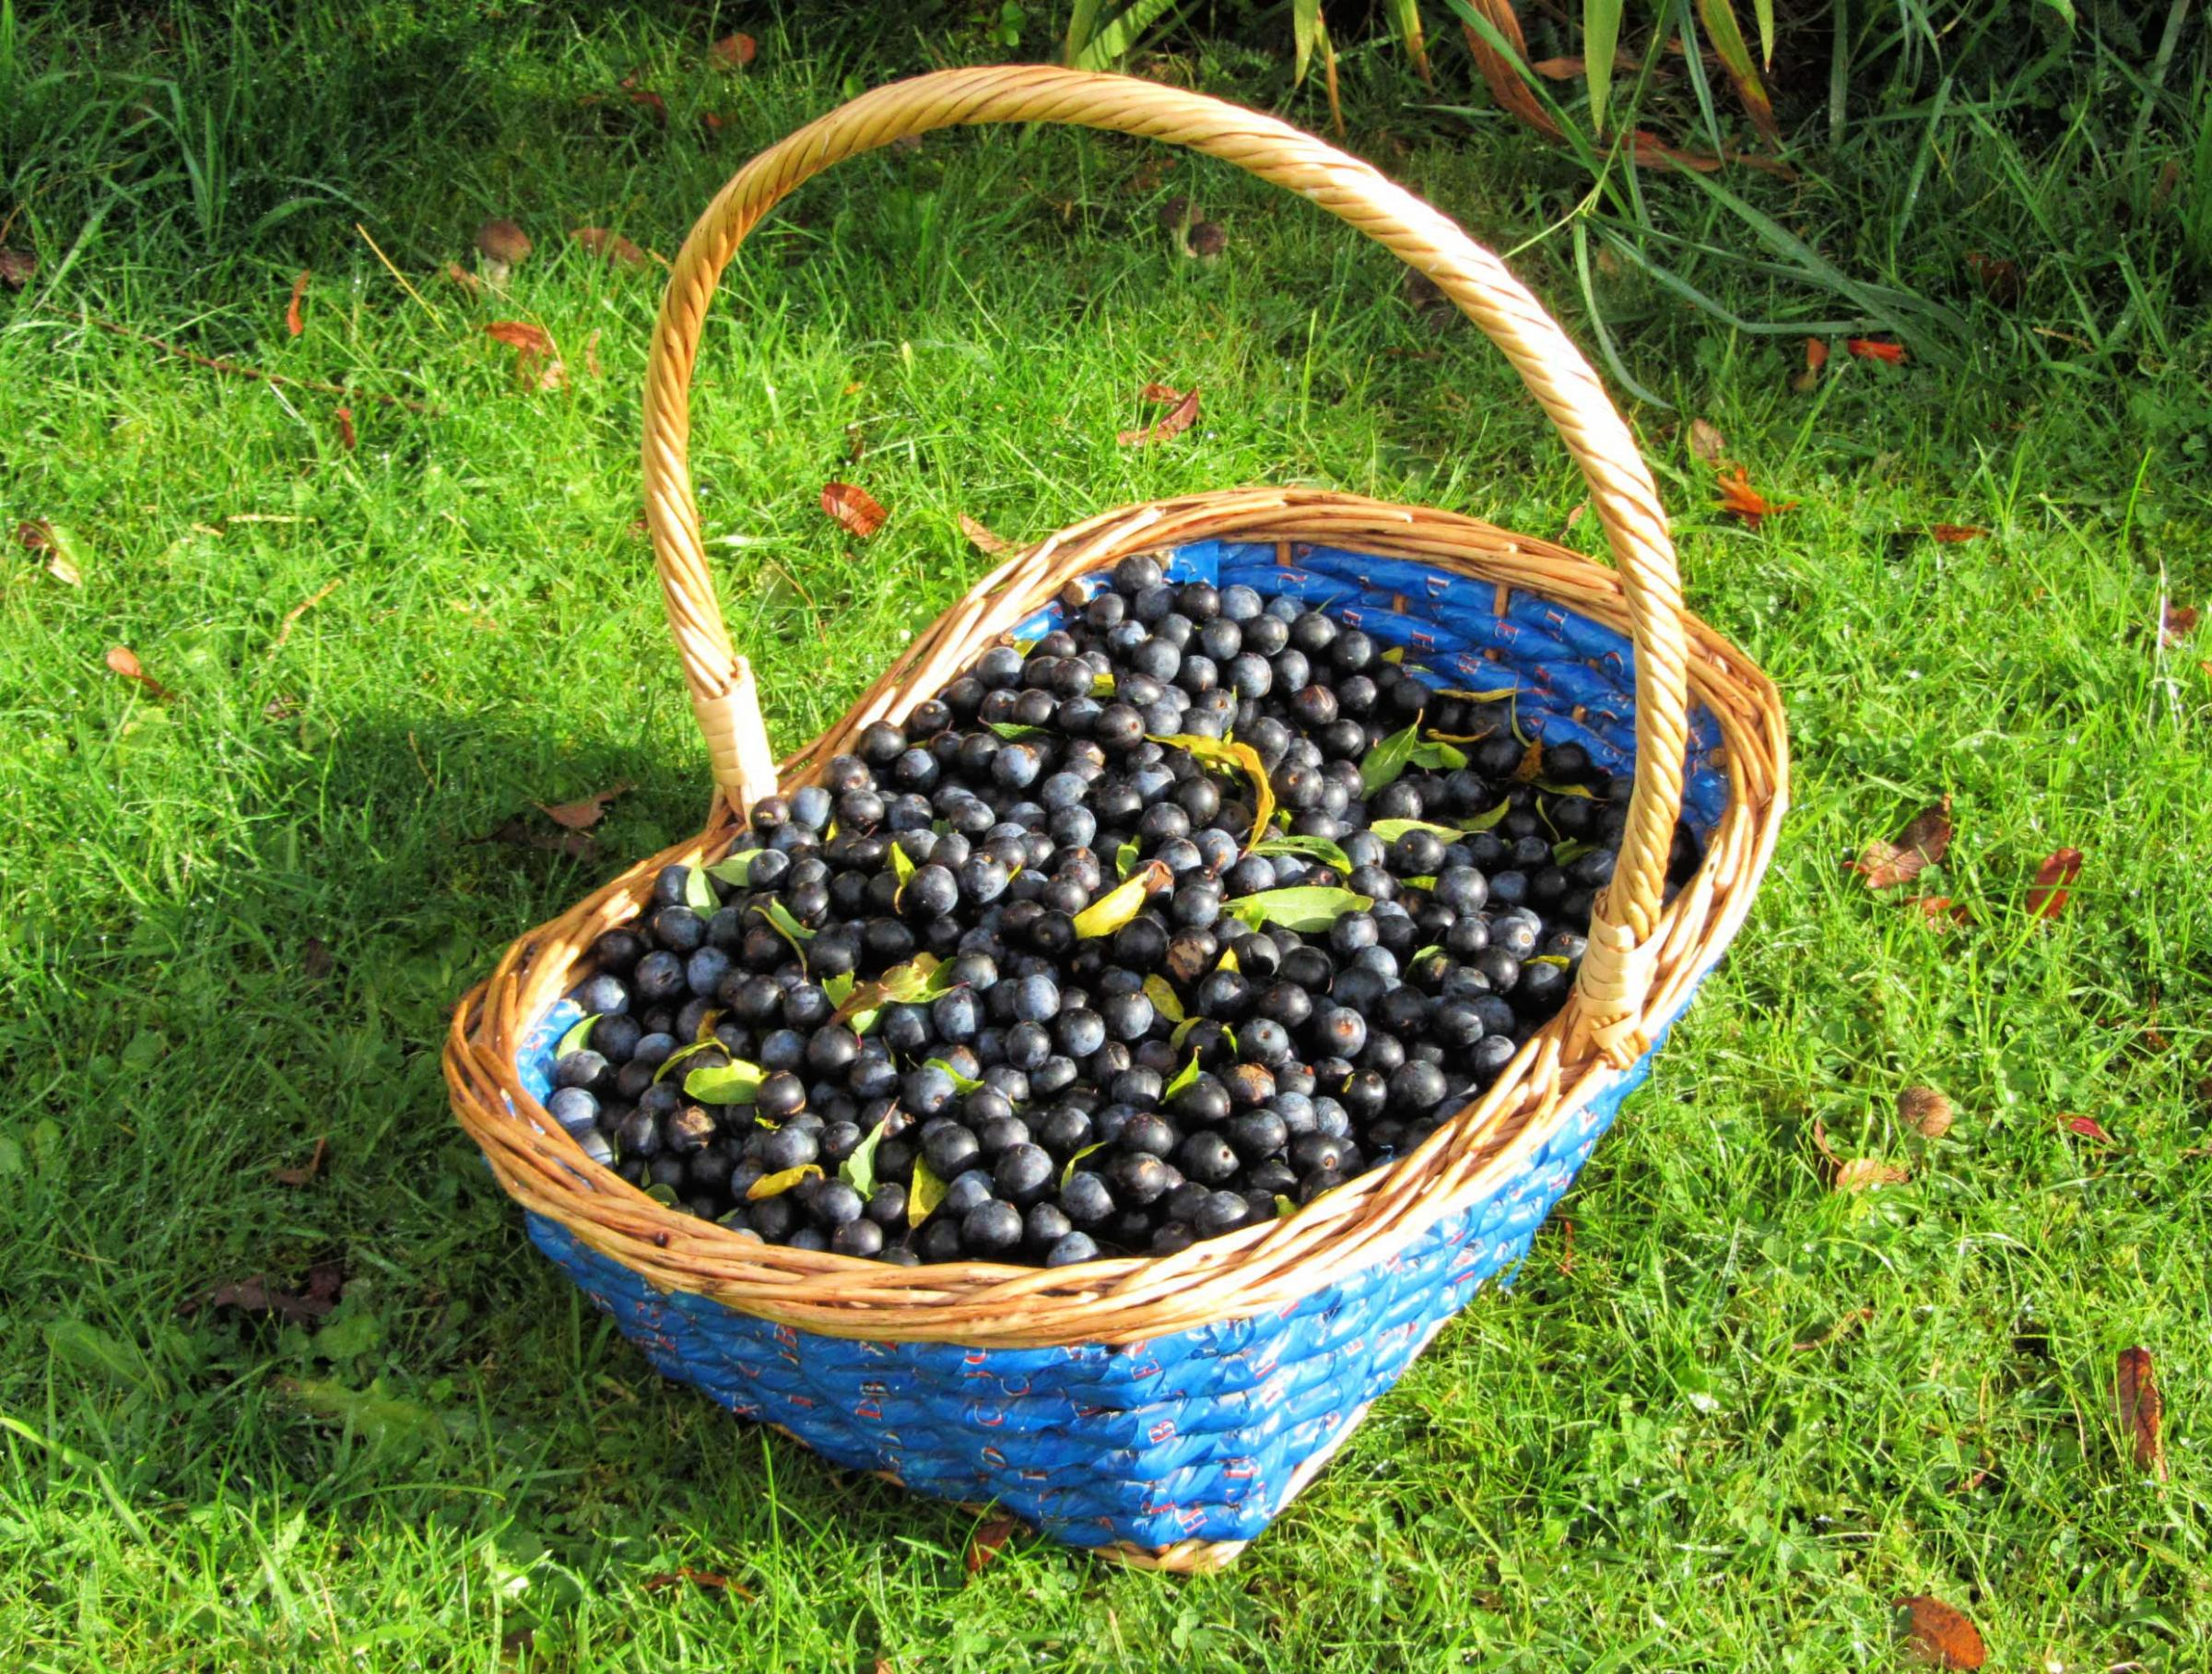 Sloes for Sloe gin